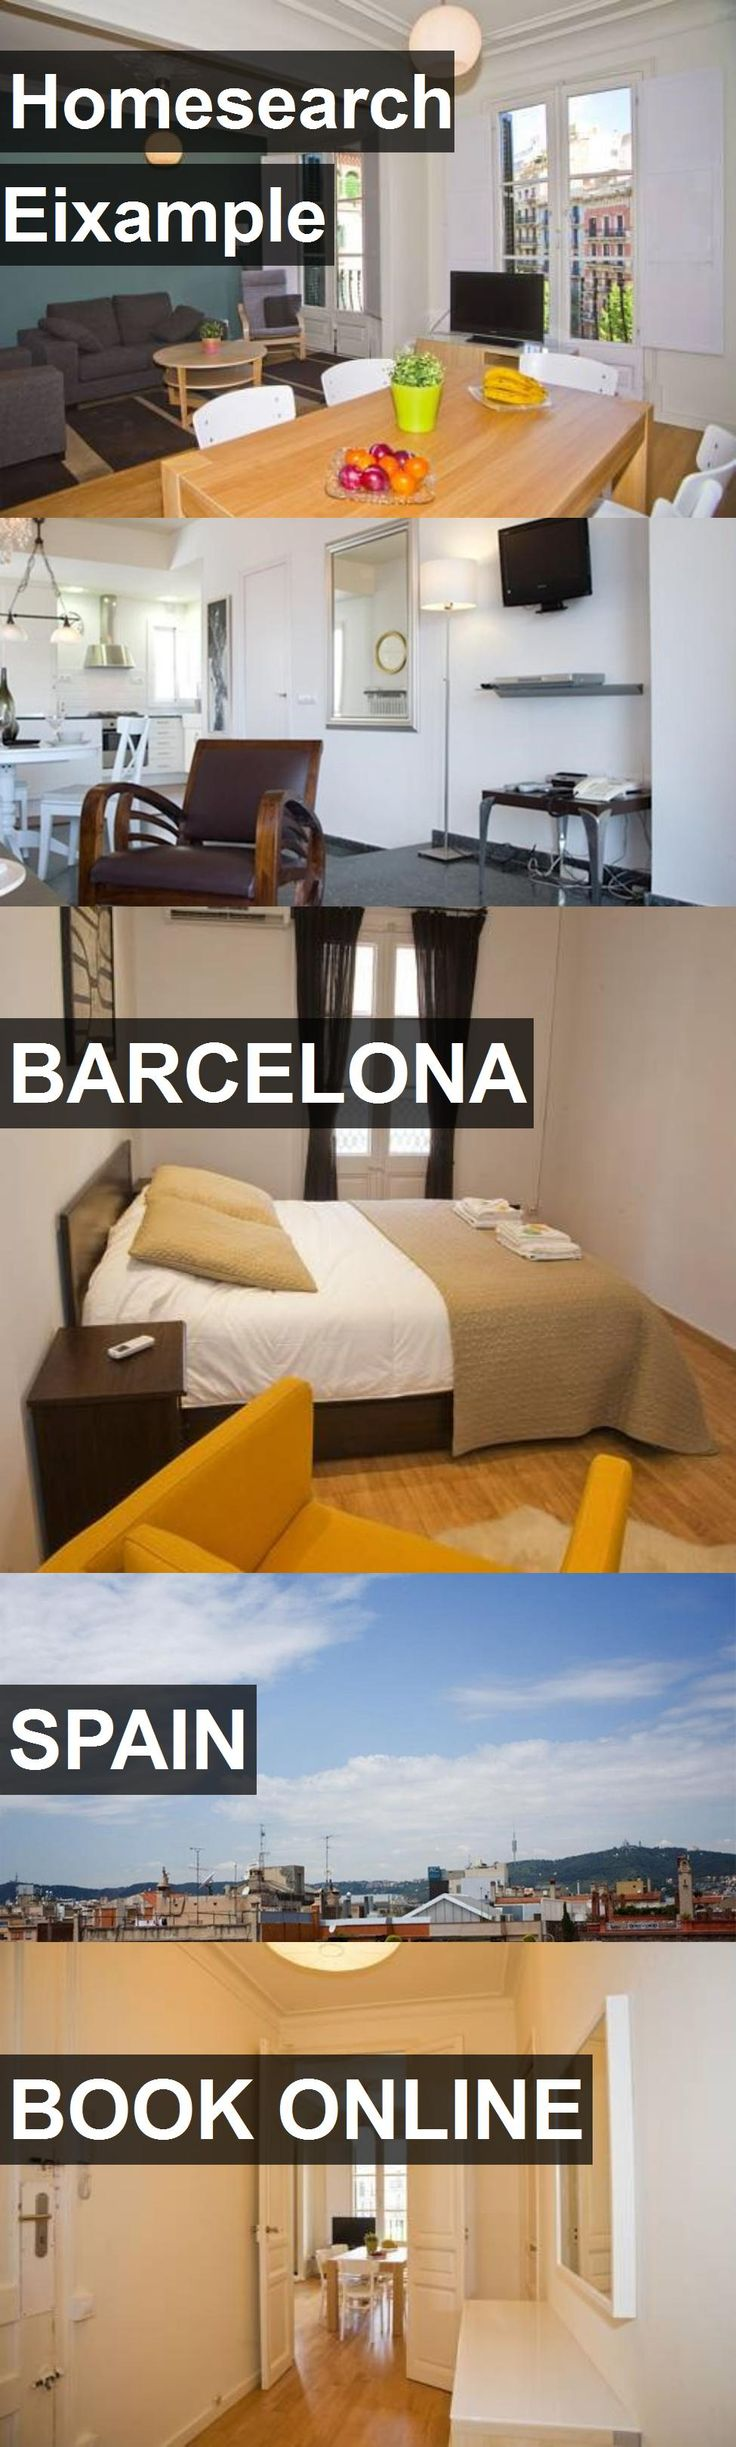 Hotel Homesearch Eixample in Barcelona, Spain. For more information, photos, reviews and best prices please follow the link. #Spain #Barcelona #travel #vacation #hotel